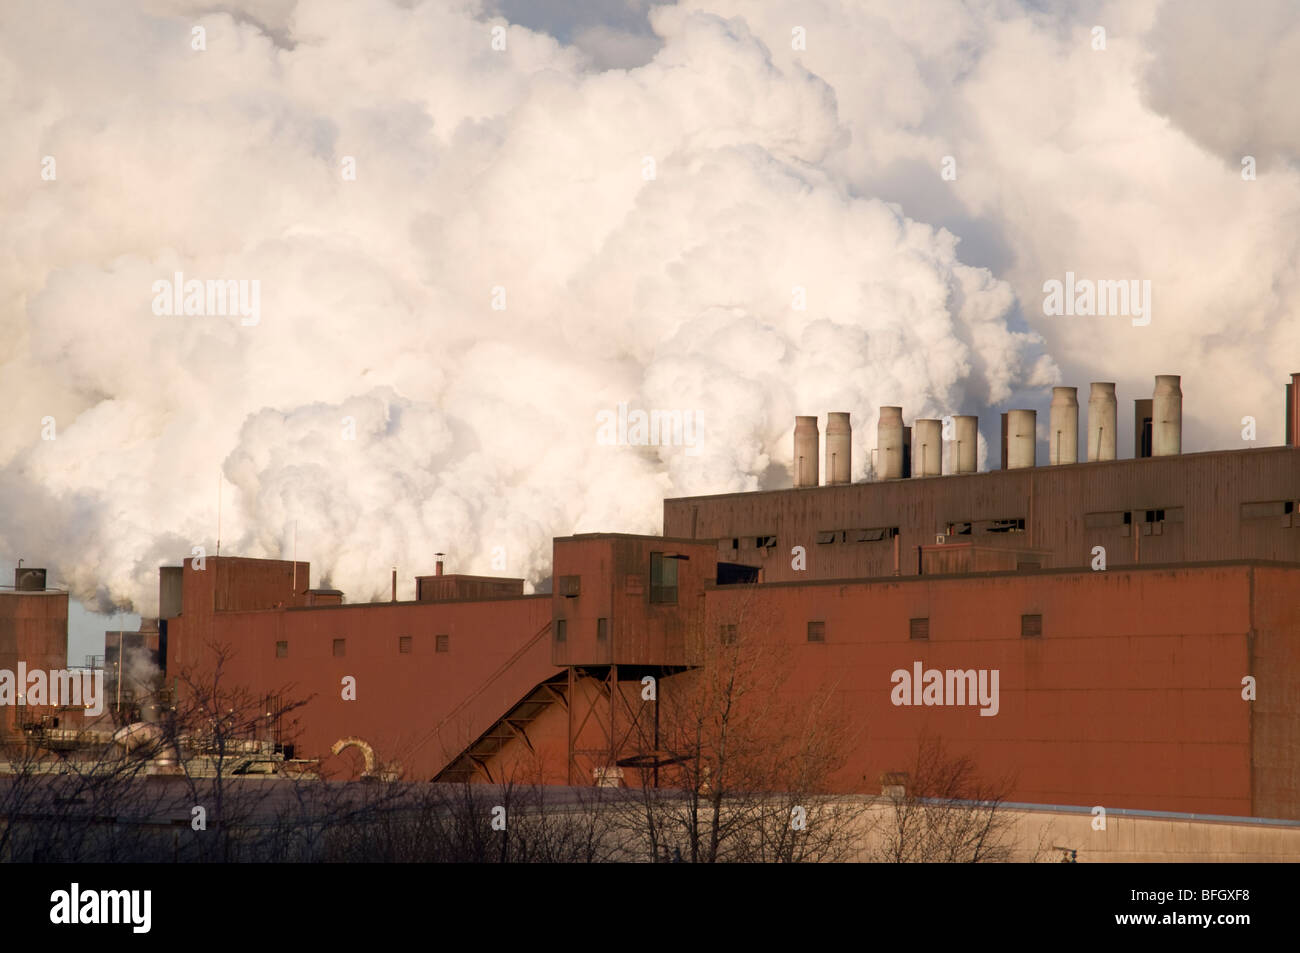 Exhaust coming from Northshore Mining Company, a Taconite processing facility in Silver Bay, Minnesota, USA - Stock Image